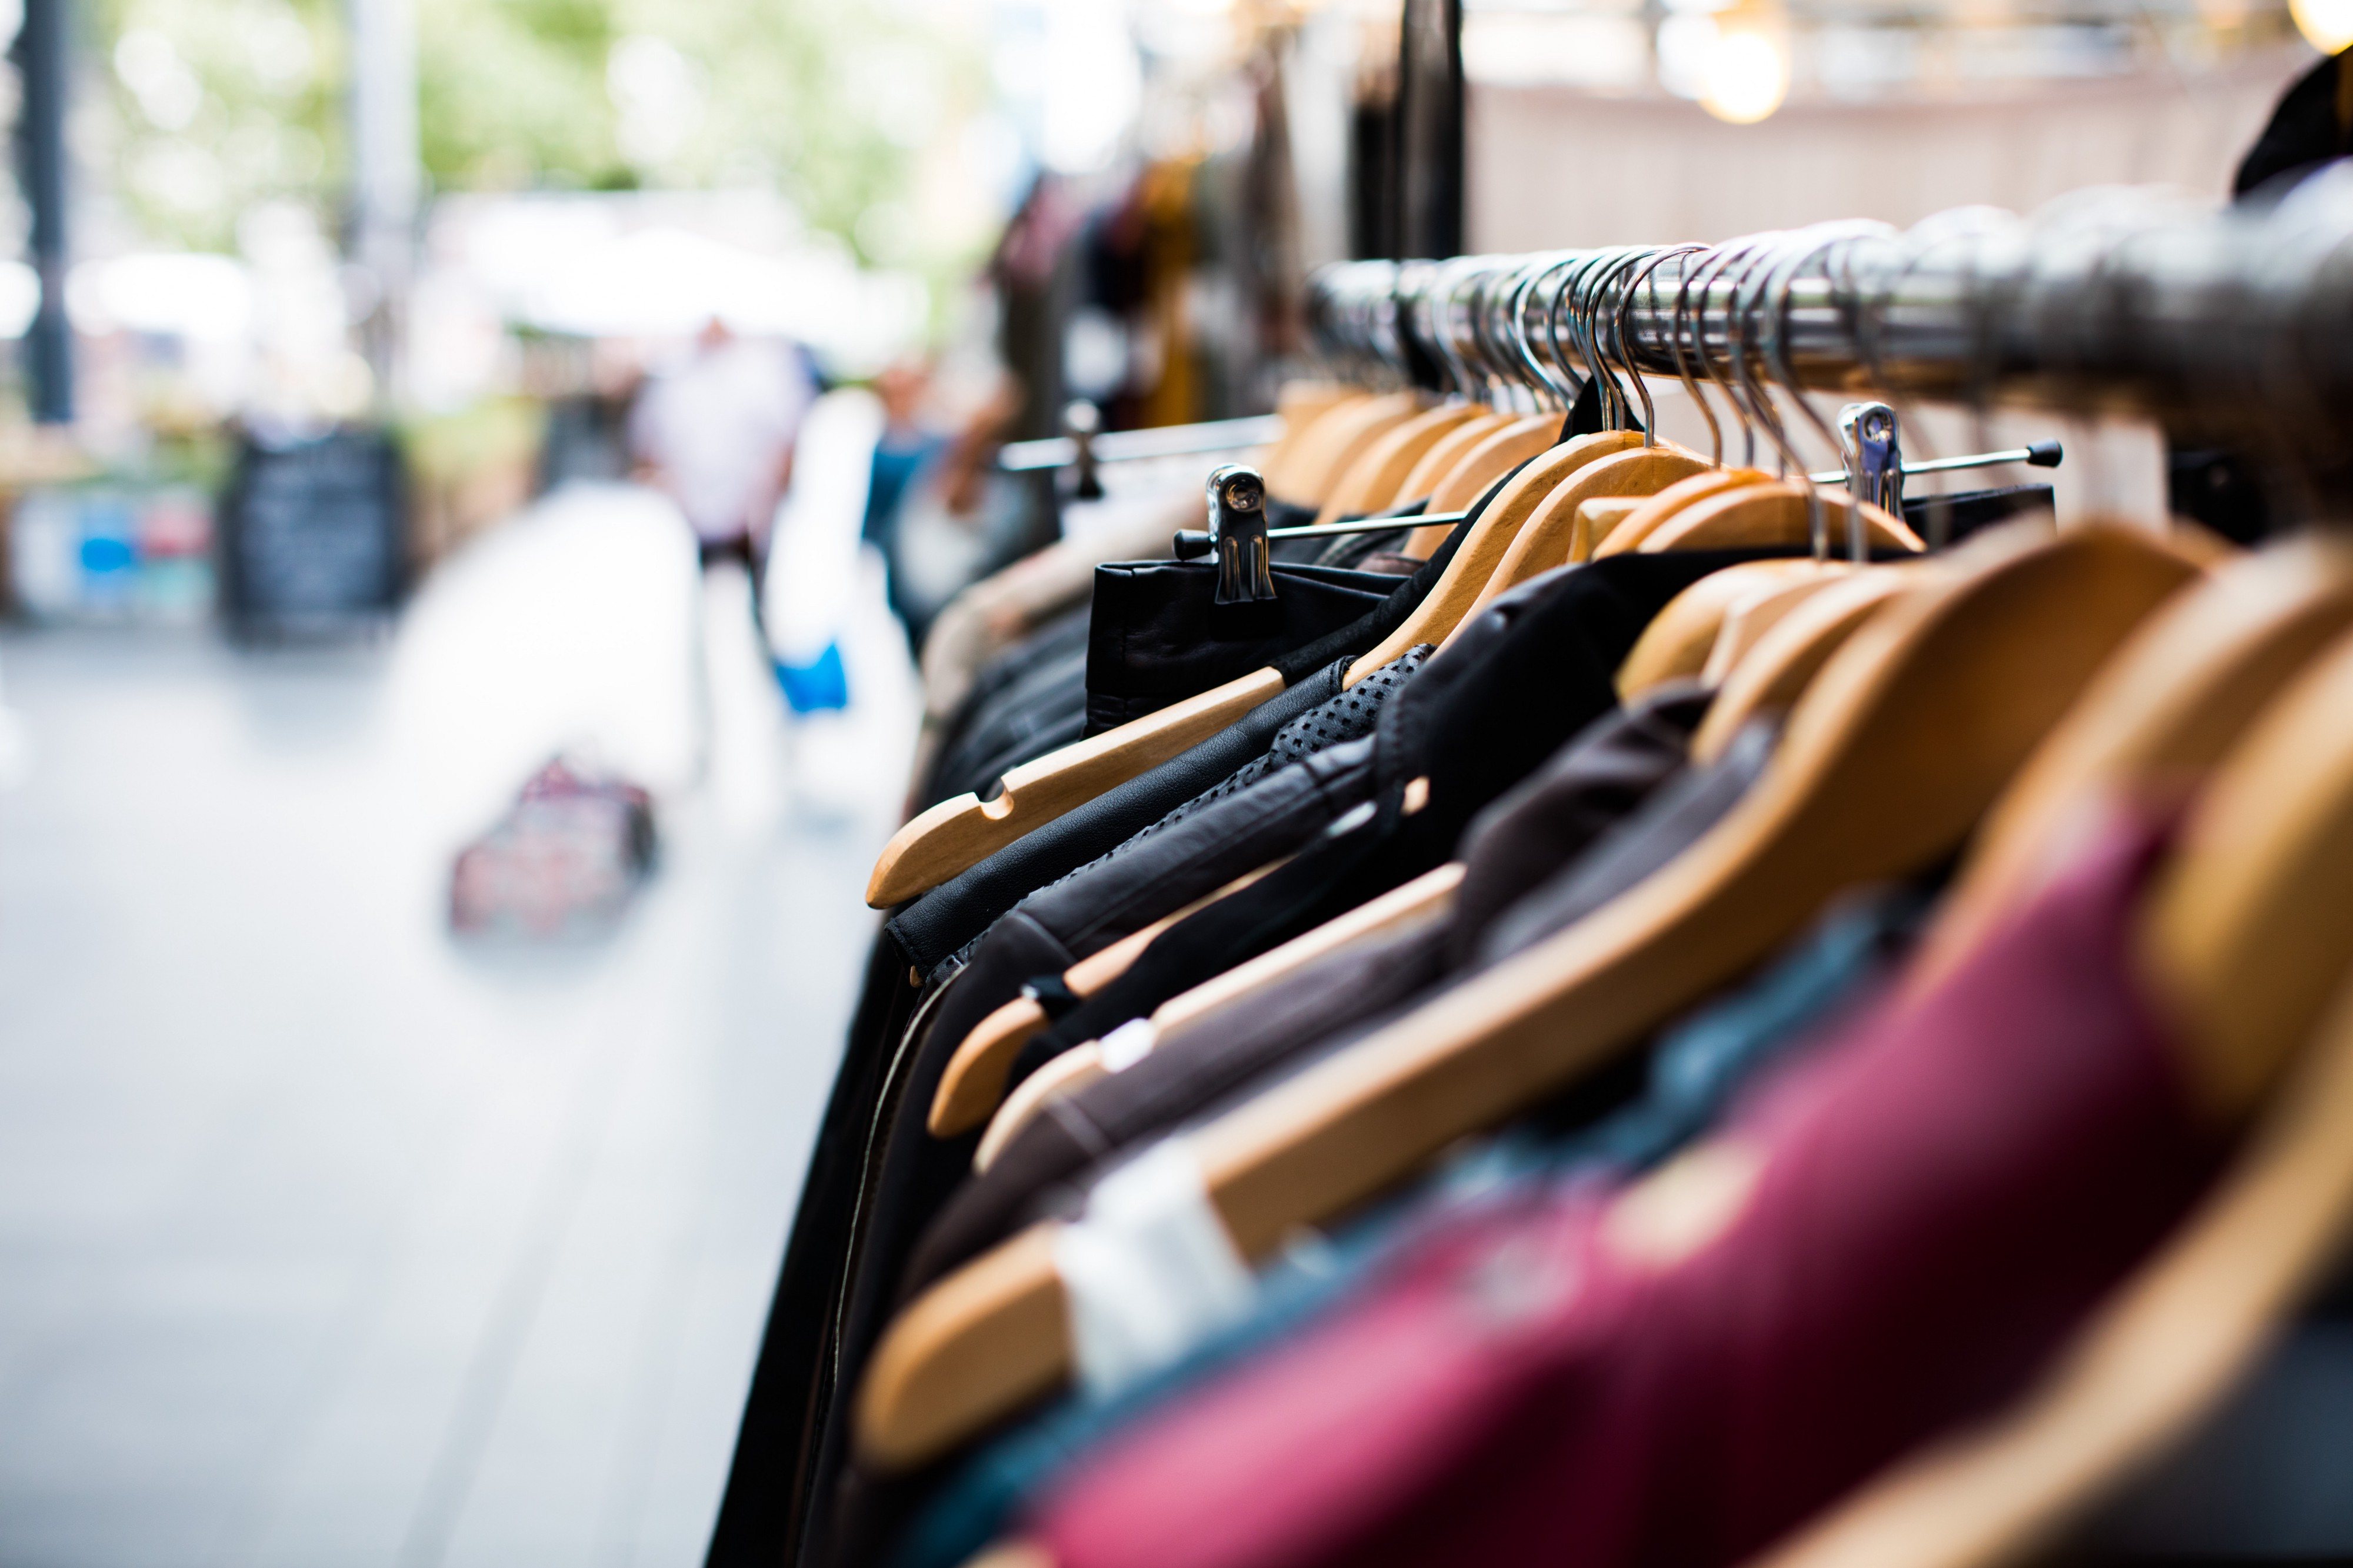 Rails of clothing for sale in an open market place